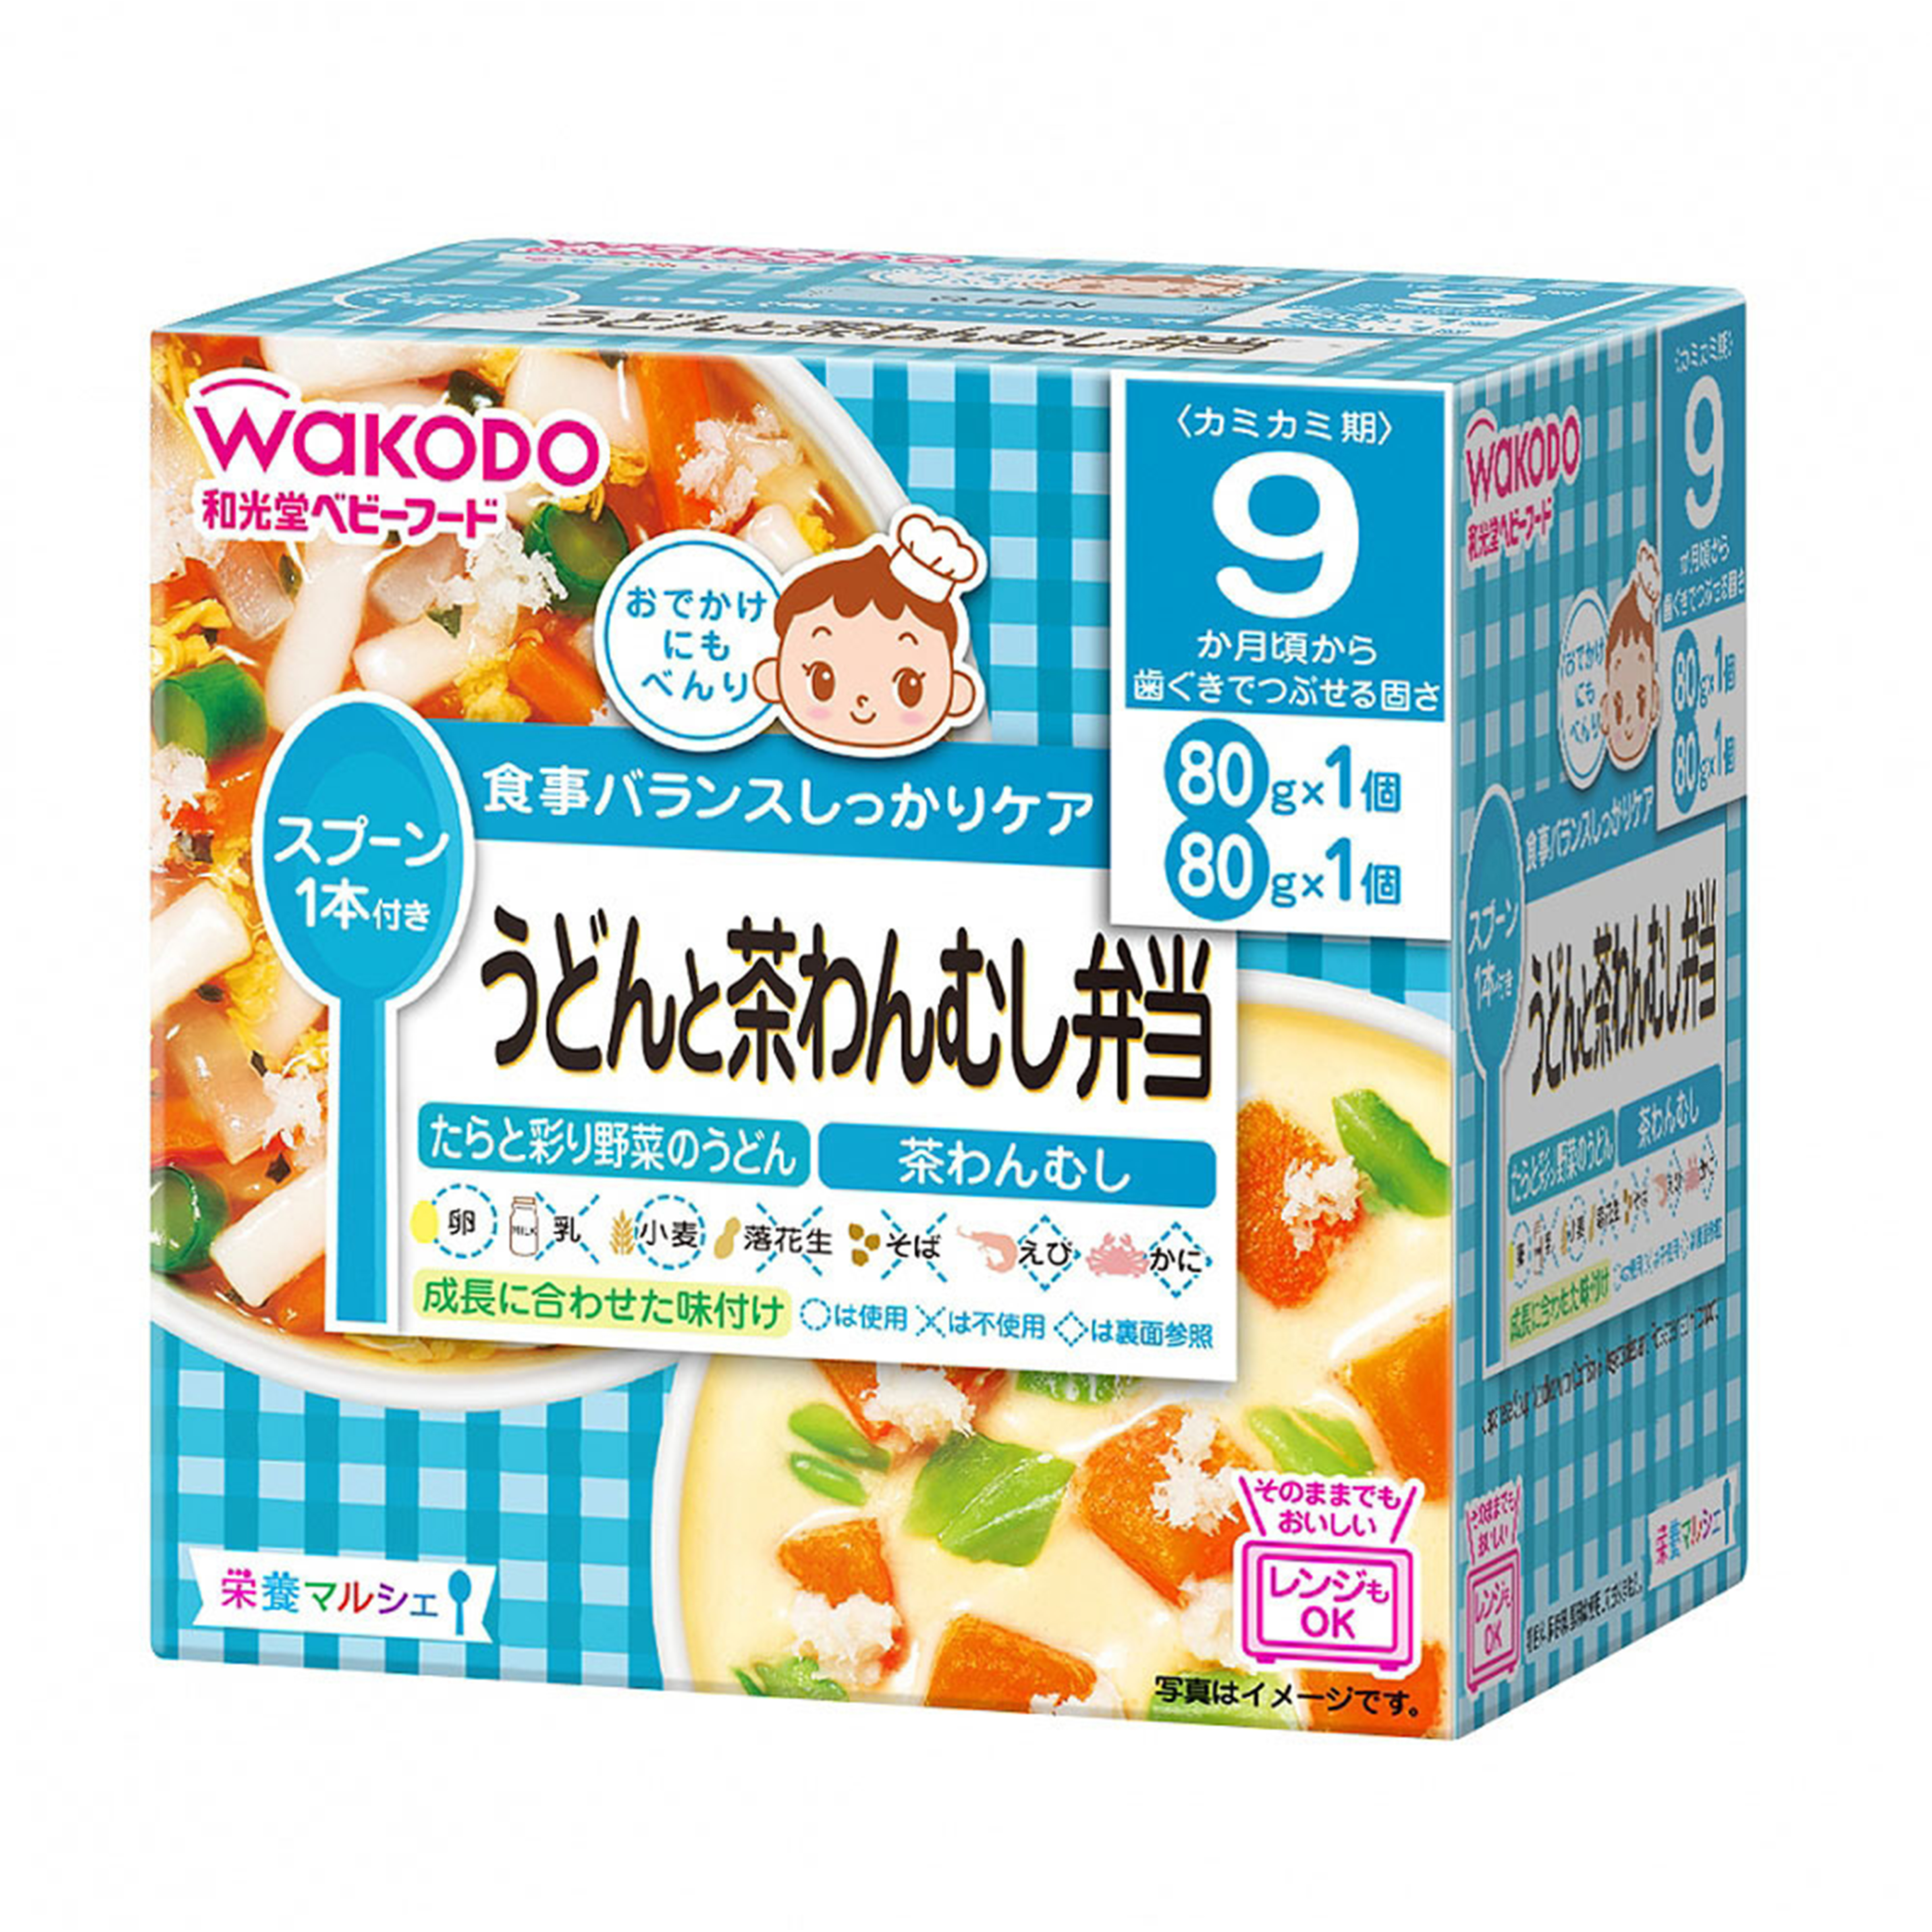 baby-fair WAKODO Japanese Soup Noodles With Codfish And Vegetables And Pot-Steamed Hotchpotch (Bundle of 4)